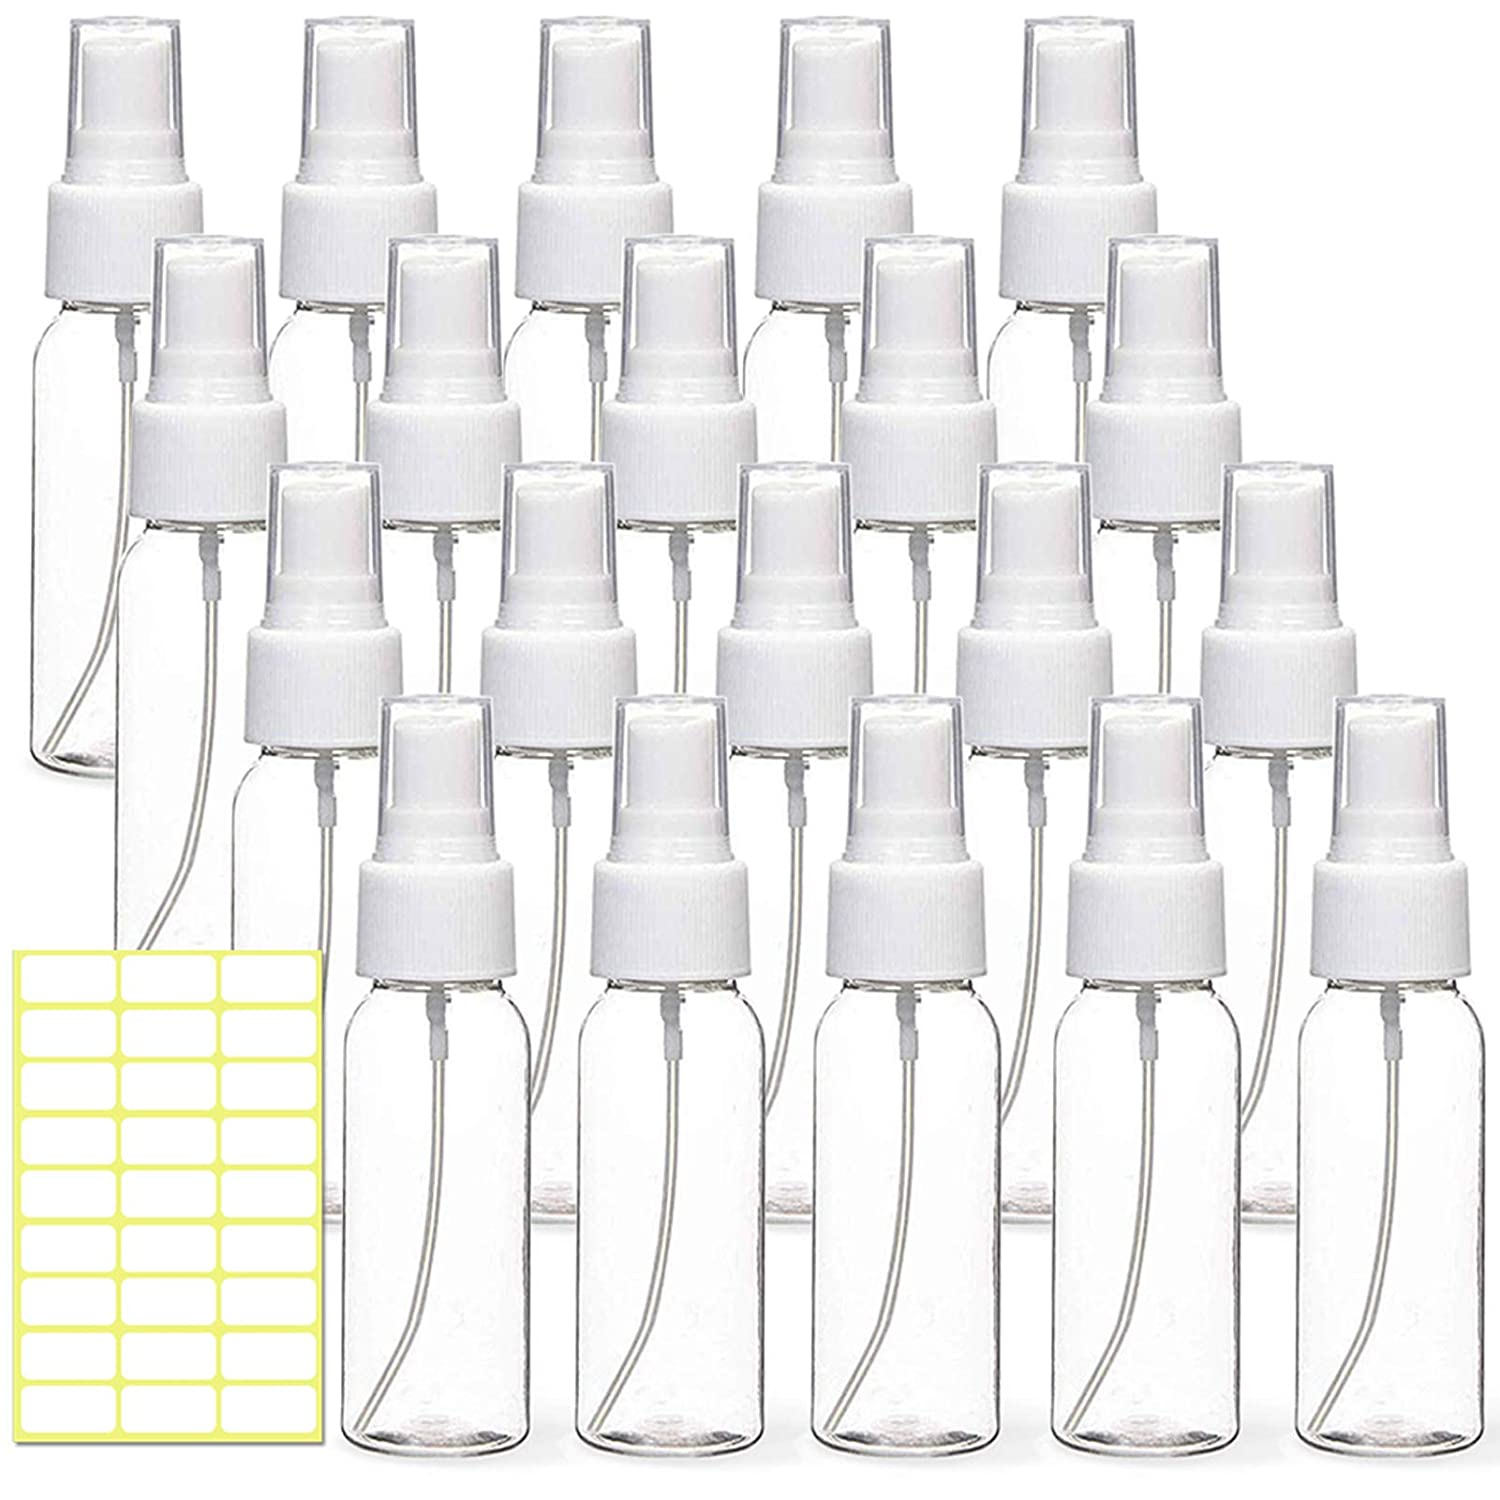 MEACOLIA 20 Pack 30ml(1oz) Extra Fine Mist Mini Clear Spray Bottles with Atomizer Pump Sprayer Bulk Refillable Reusable Empty Plastic Travel Size Bottles for Essential Oils,Cleaning,Perfumes